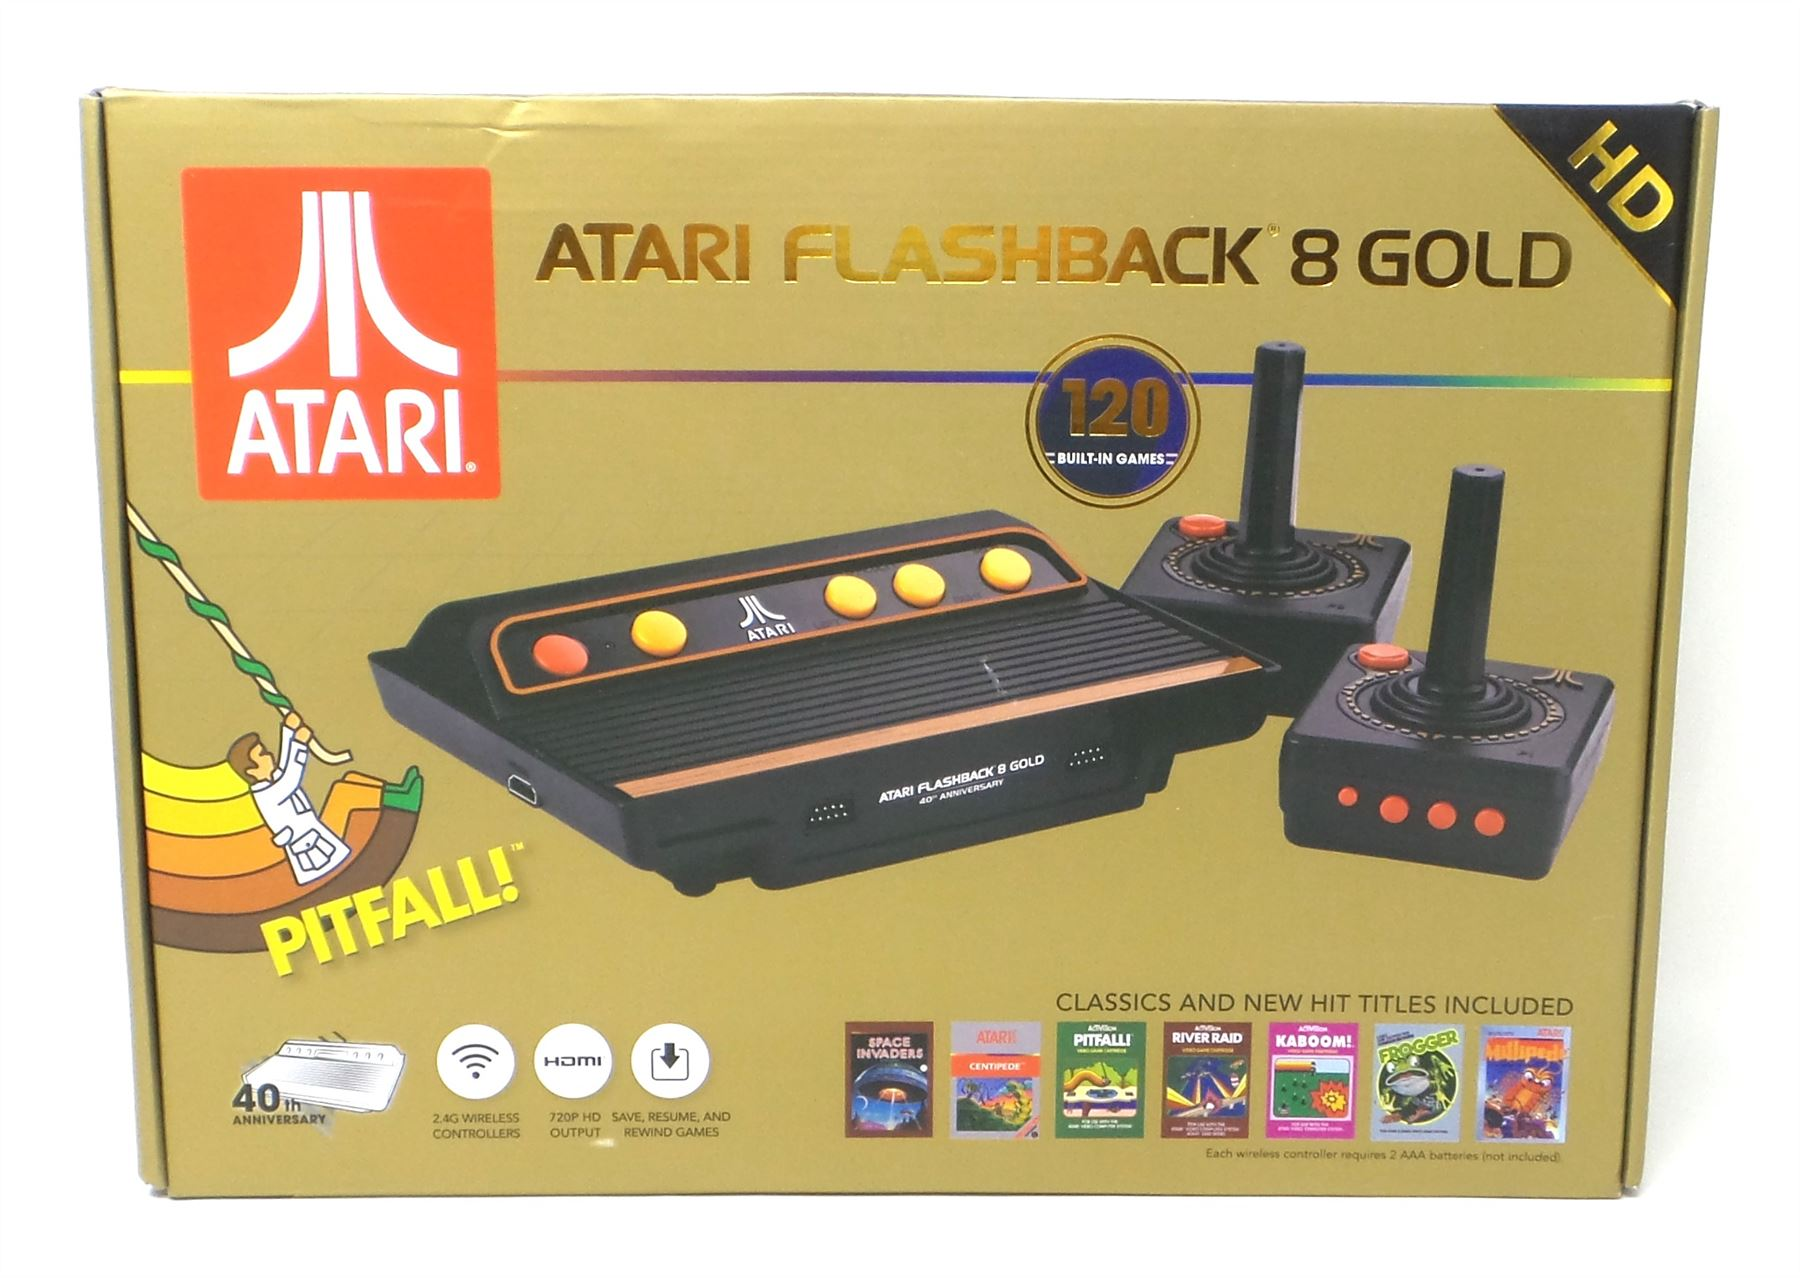 Details About Atari Flashback 8 Gold Hd Classic Gaming Console 120 Built In Games Ar3620